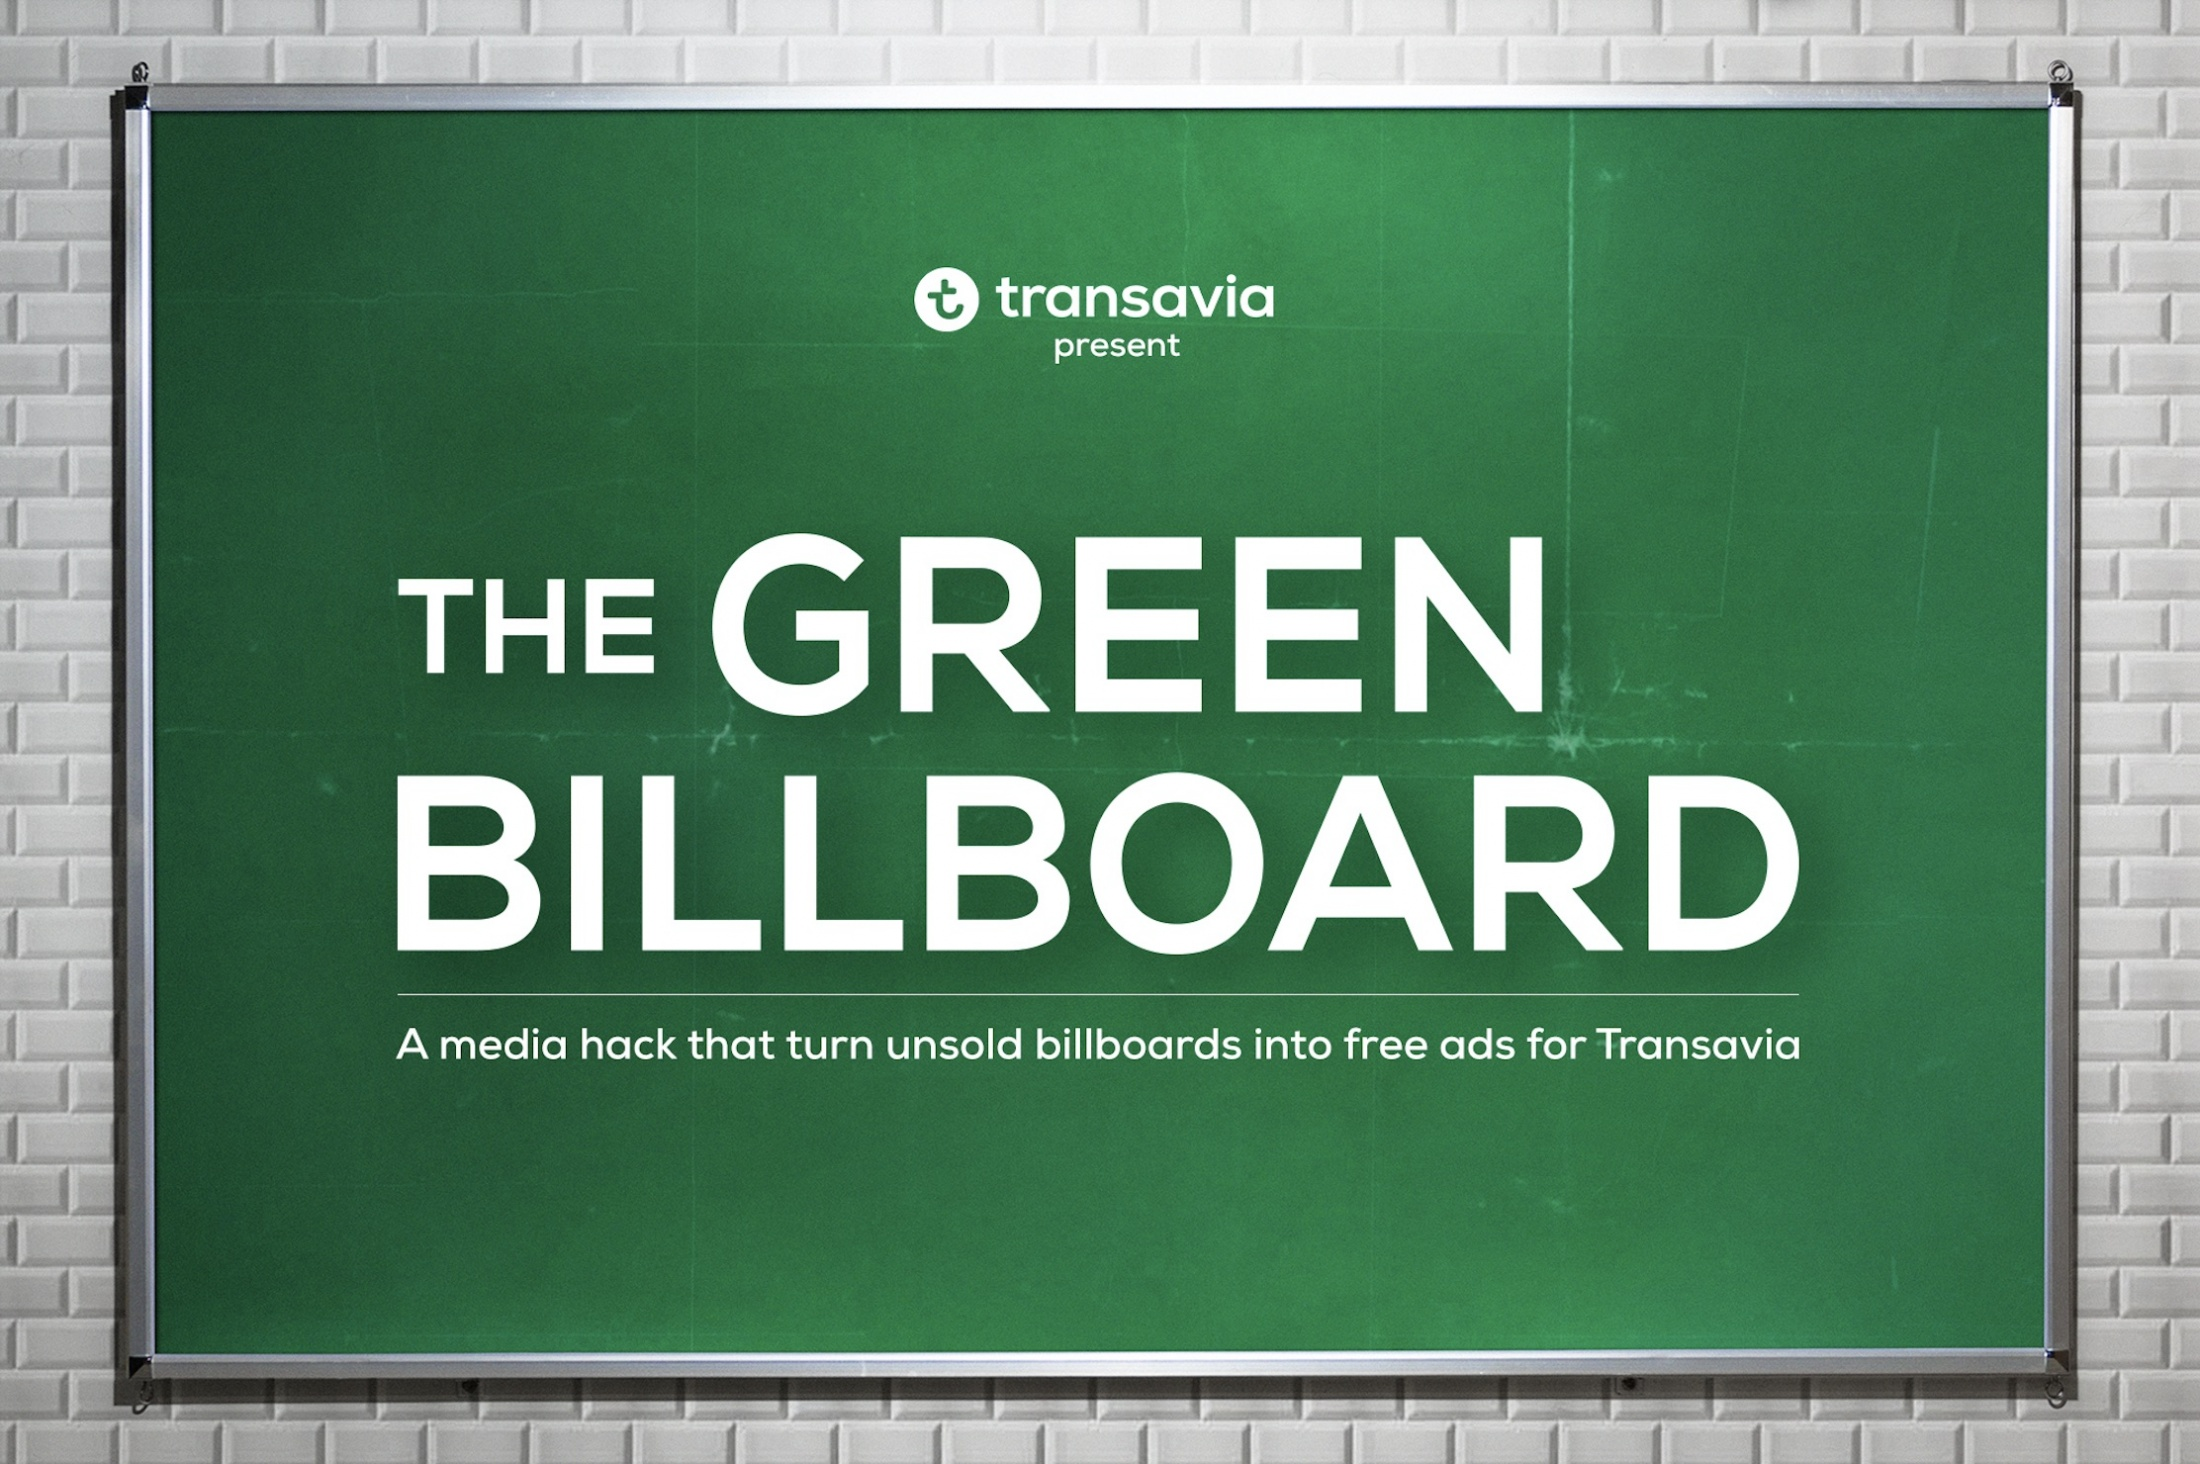 Thumbnail for The Green Billboard